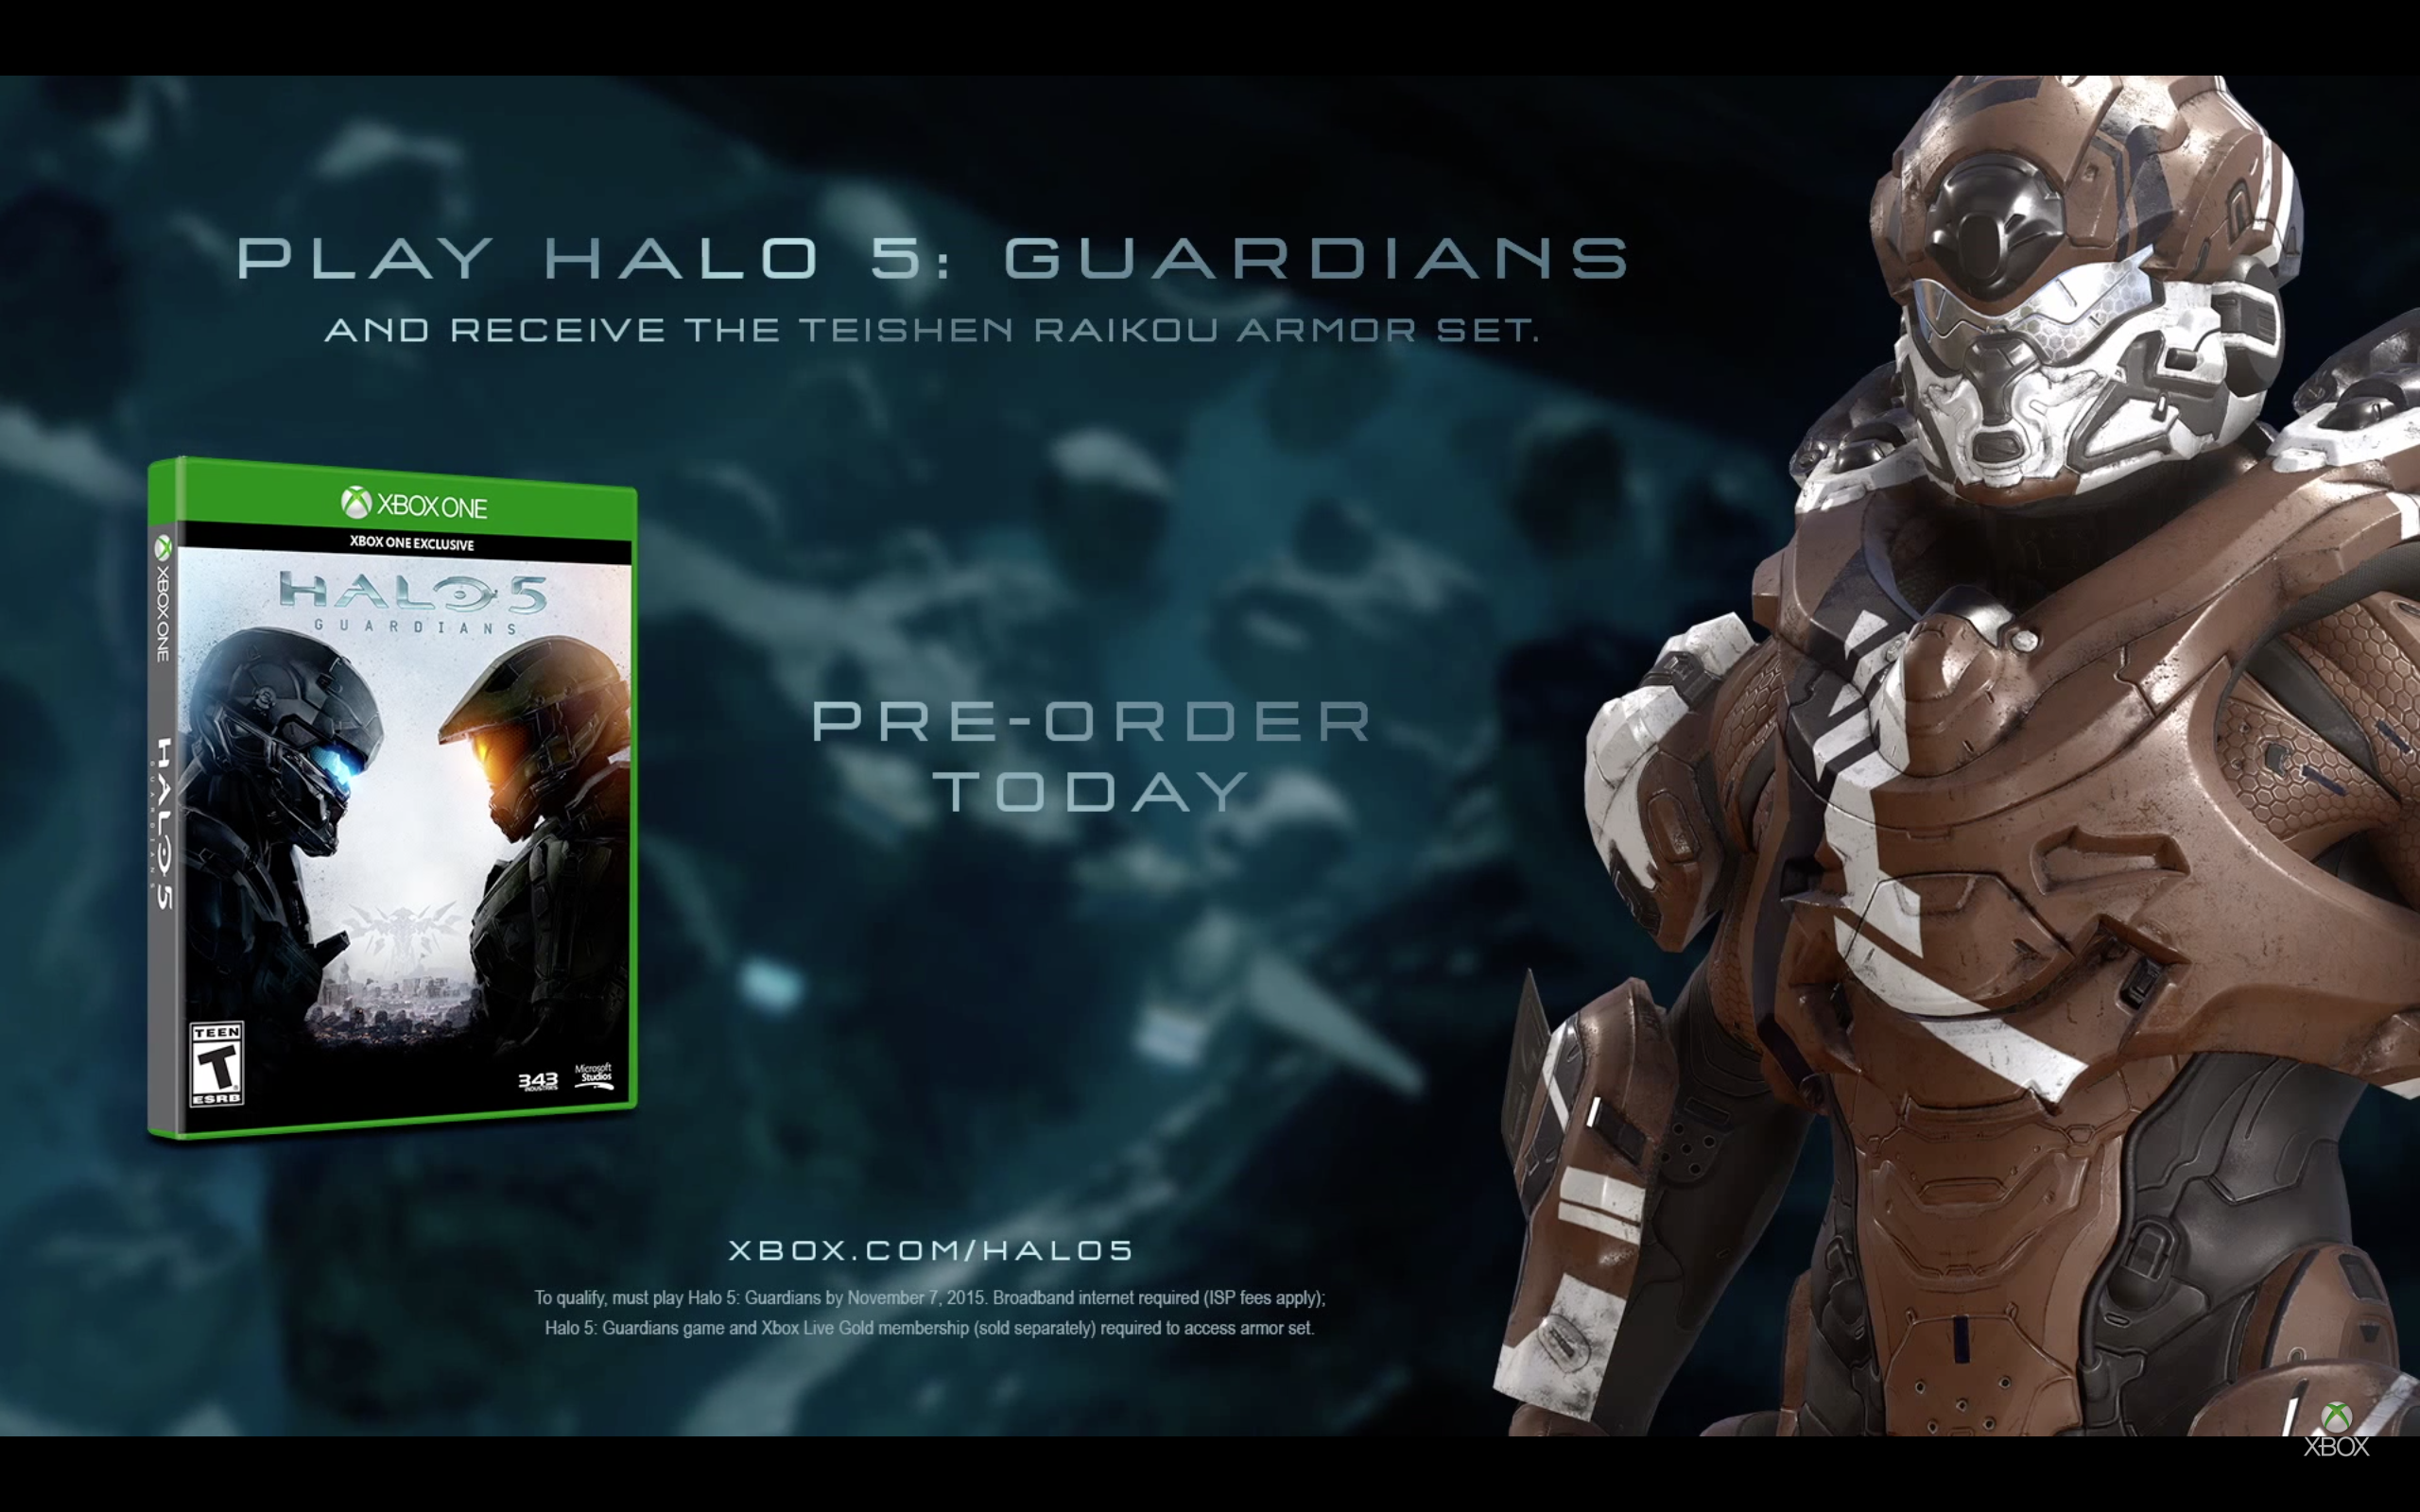 """Halo 5"" Has Bonus Armor for Playing Early"